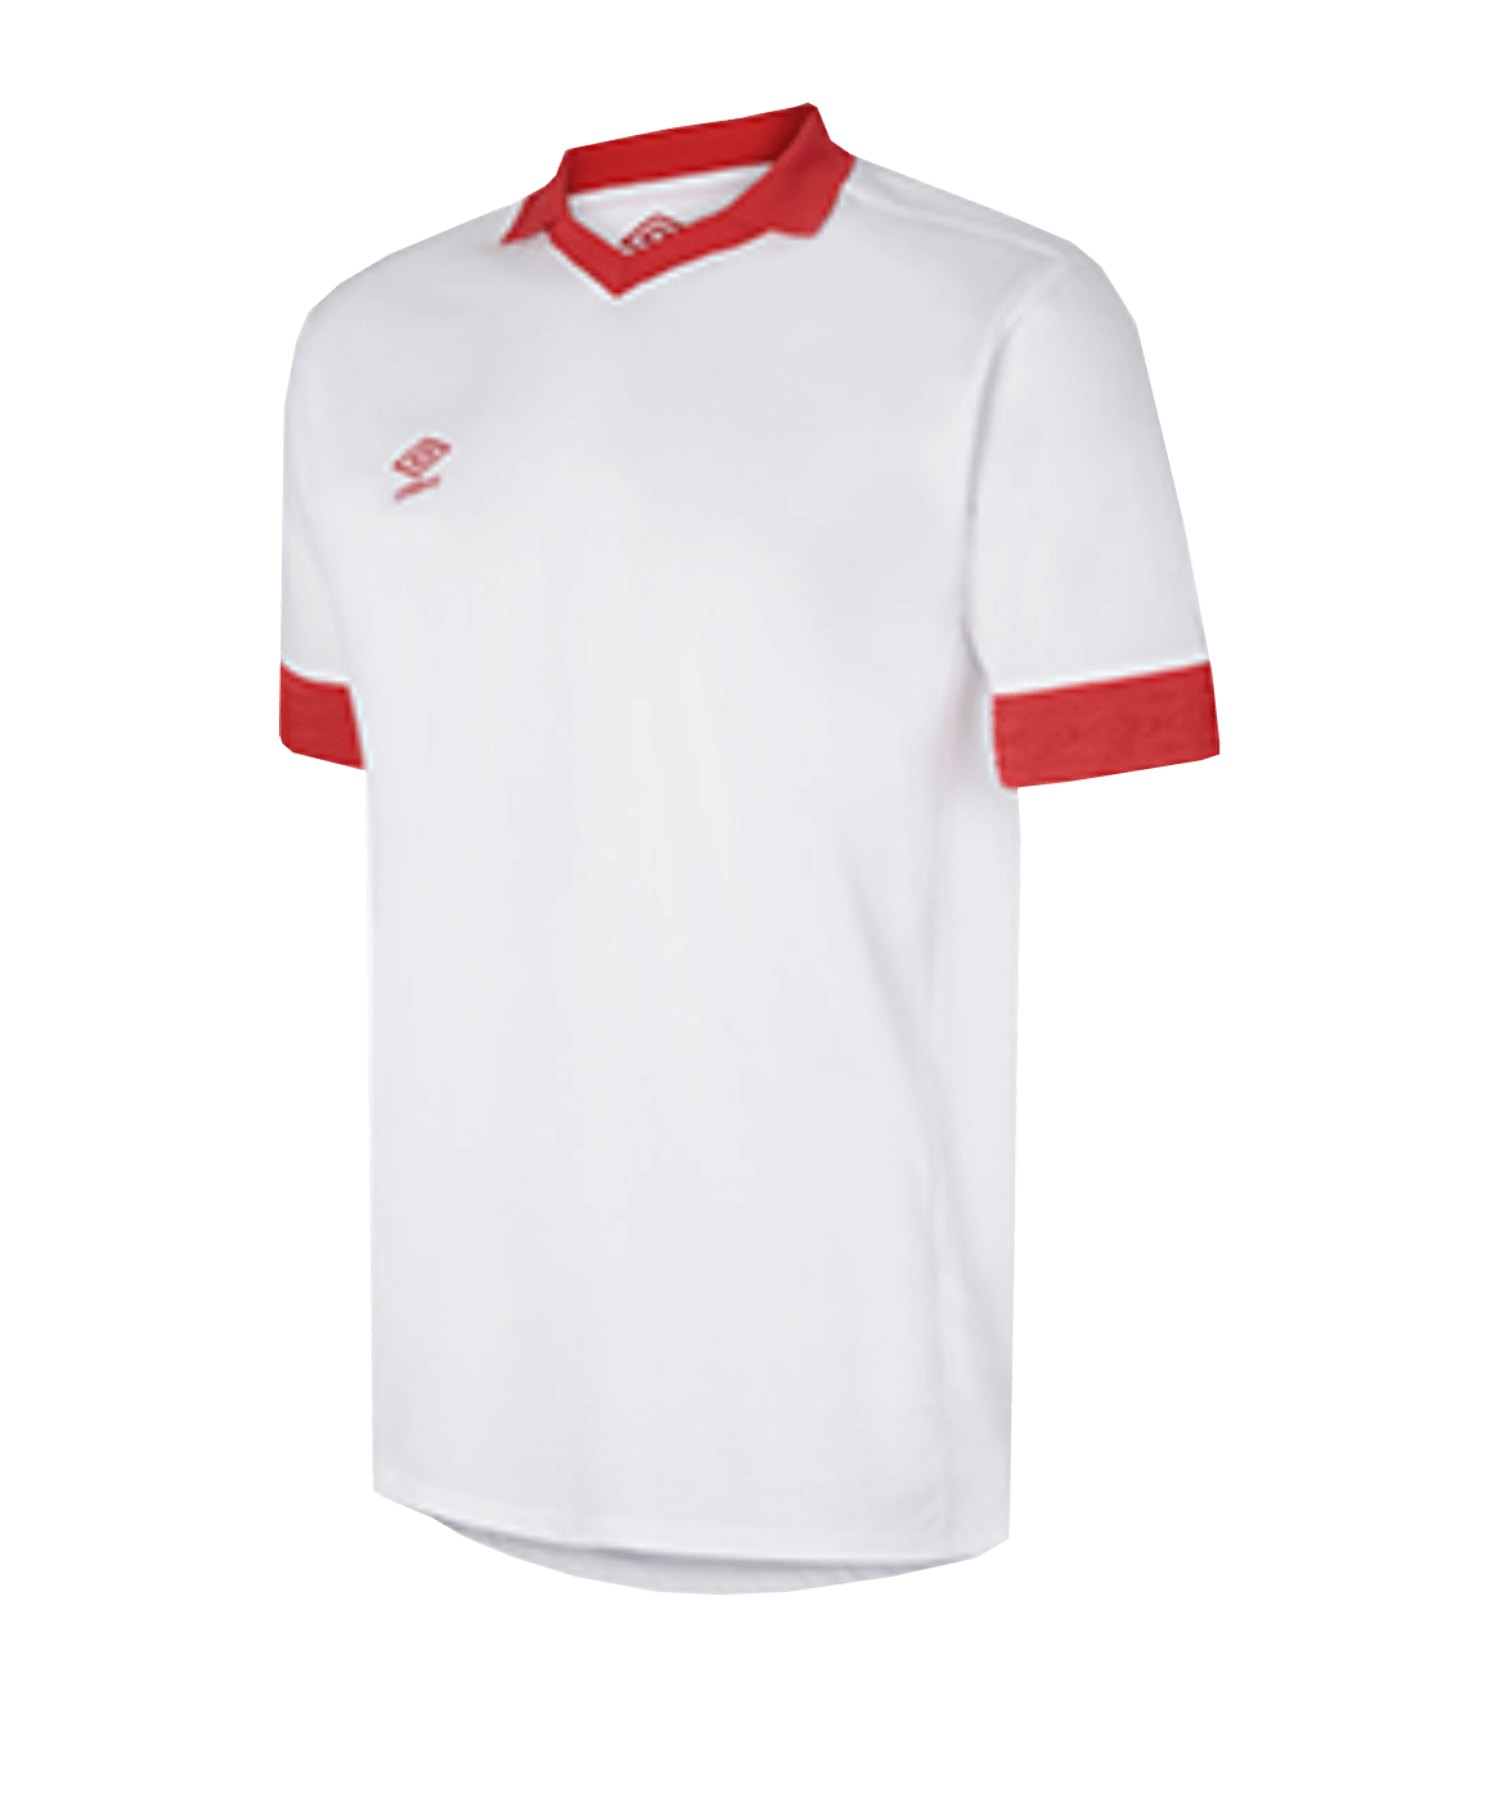 Umbro Club Essential Tempest Trikot Weiss F2M1 - Weiss